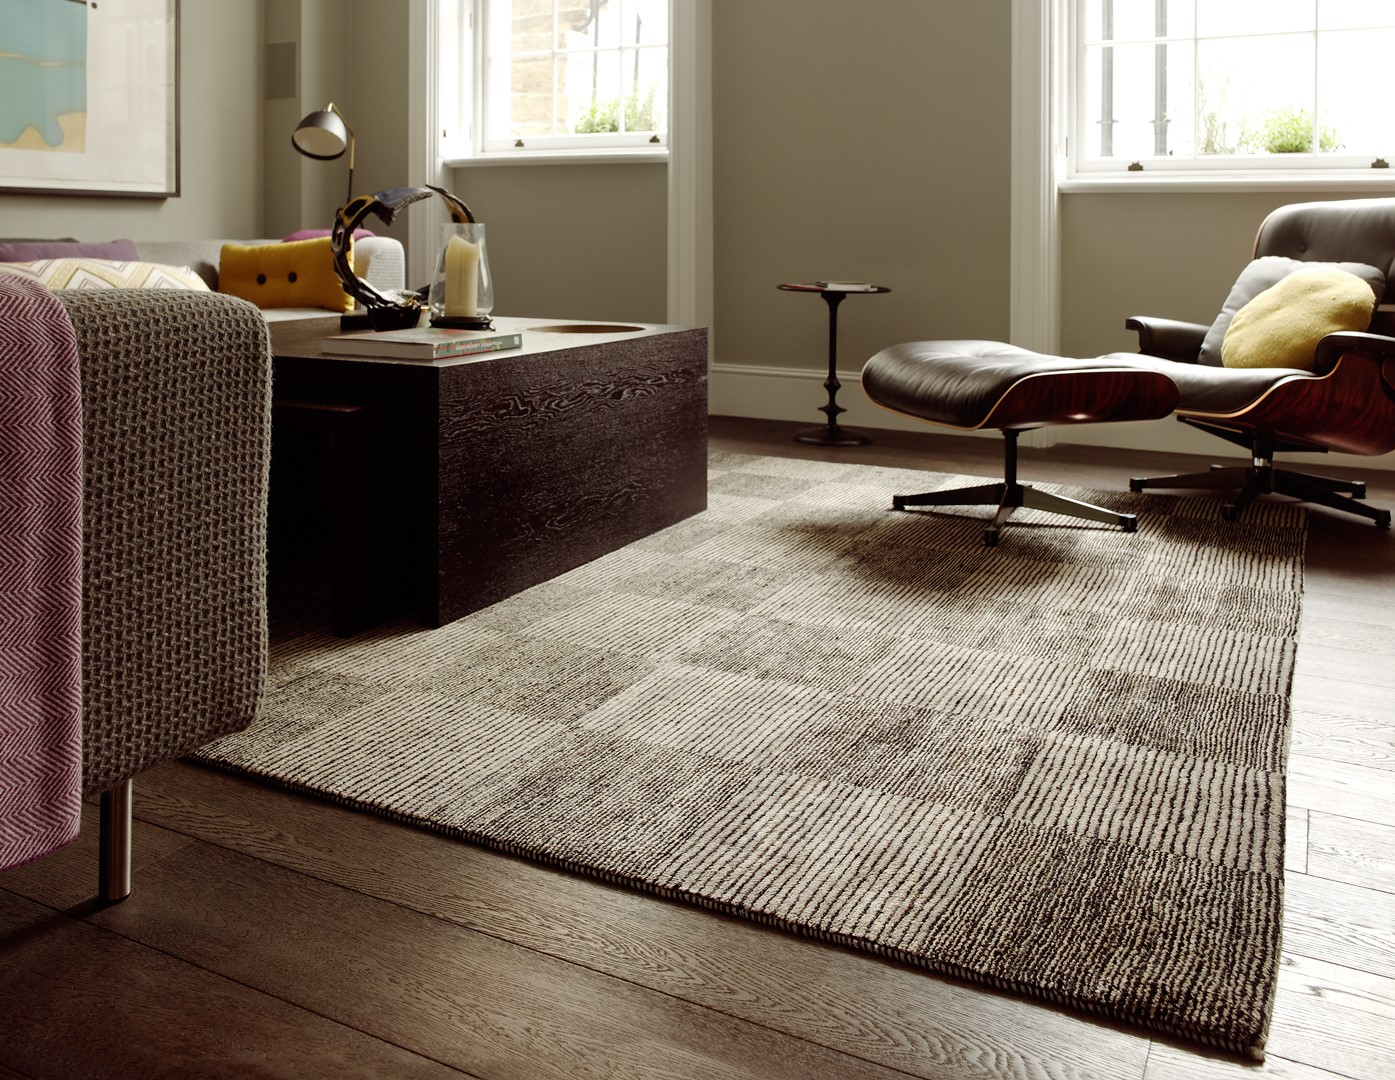 captivating choosing rug size living room | Rug Size Guide | Rug Decorating Tips To Choose The Right ...